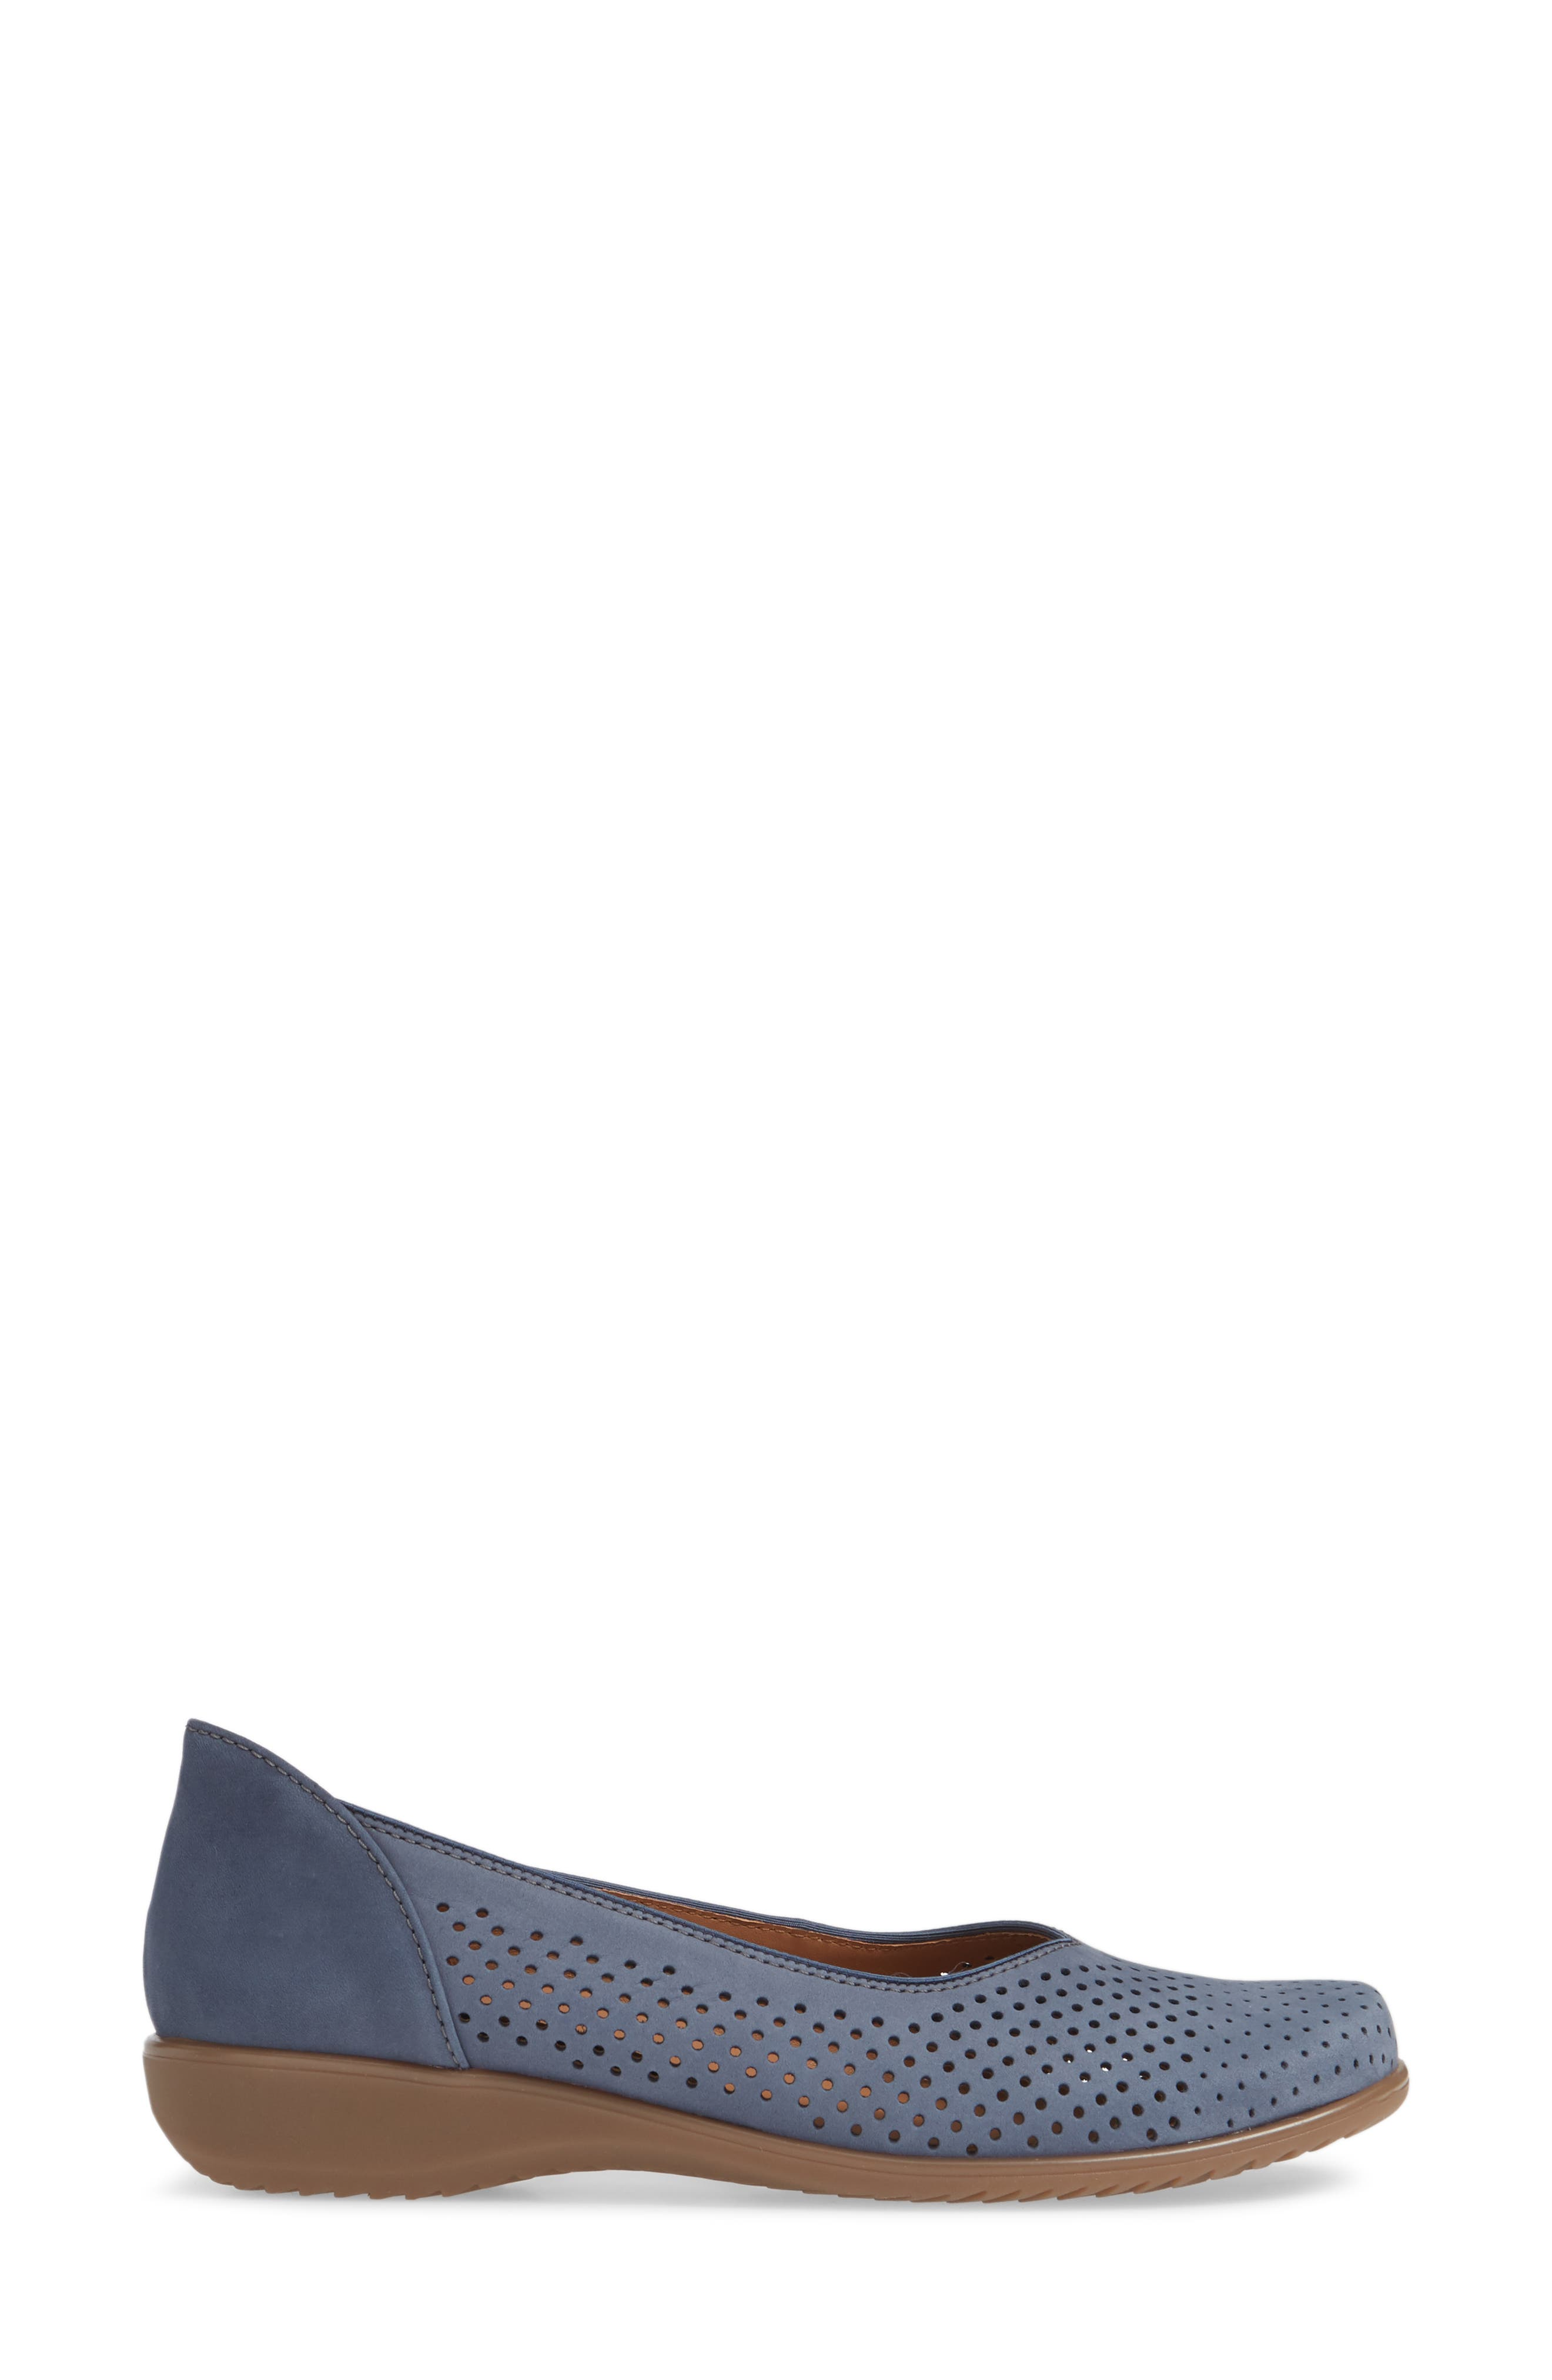 ARA,                             Avril Perforated Flat,                             Alternate thumbnail 3, color,                             JEANS NUBUCK LEATHER